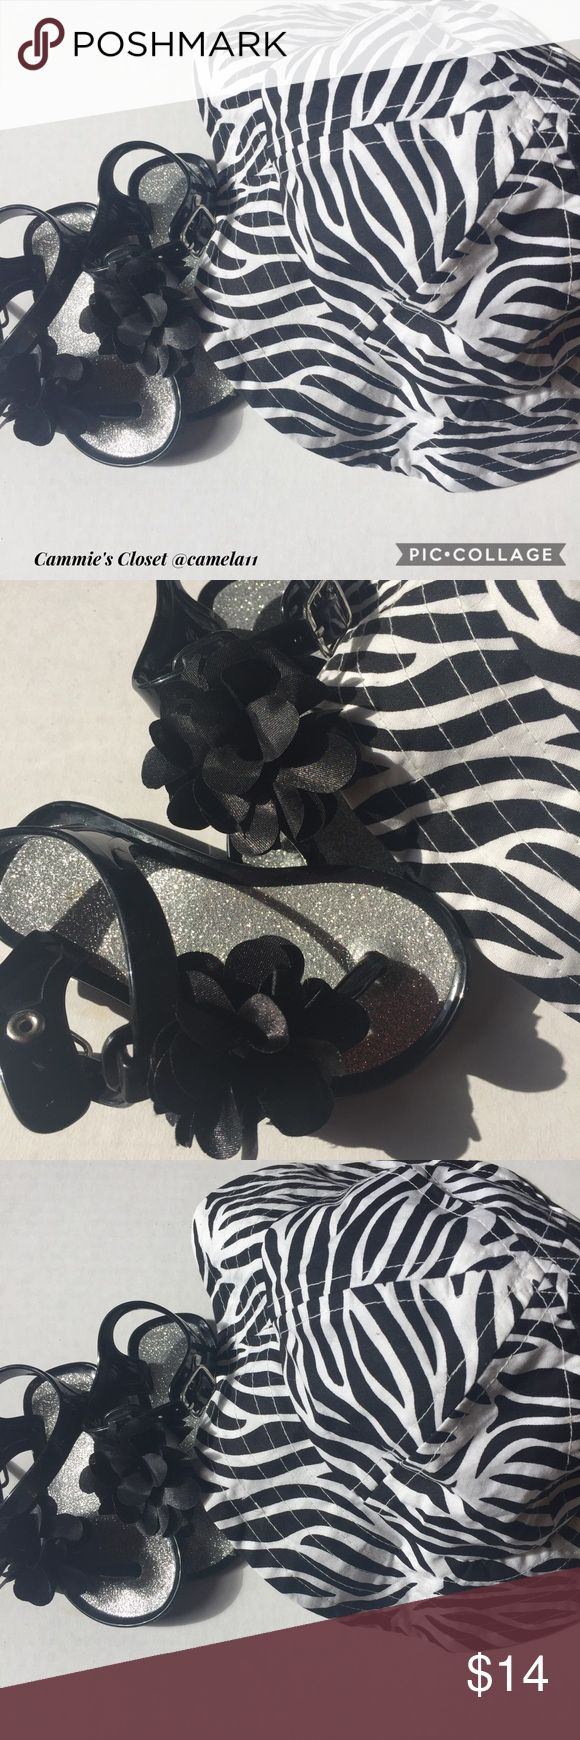 New listing! Infant black sandals and zebra hat! Cute black jelly sandals with silver glitter bottom; sandal goes btw toes; has black flower accent; sandals are a size 4; zebra sun hat size 2T, but fits any size below 2 years old.  Also available in my closet you will find jewelry, such as rings, necklaces, bracelets & earrings; make up, such as eyeliner, false eye lashes, lipstick & mascara; women's clothing, such as vests, sweaters, dresses, pants, jeans, bras & shirts/tops; kids clothing…